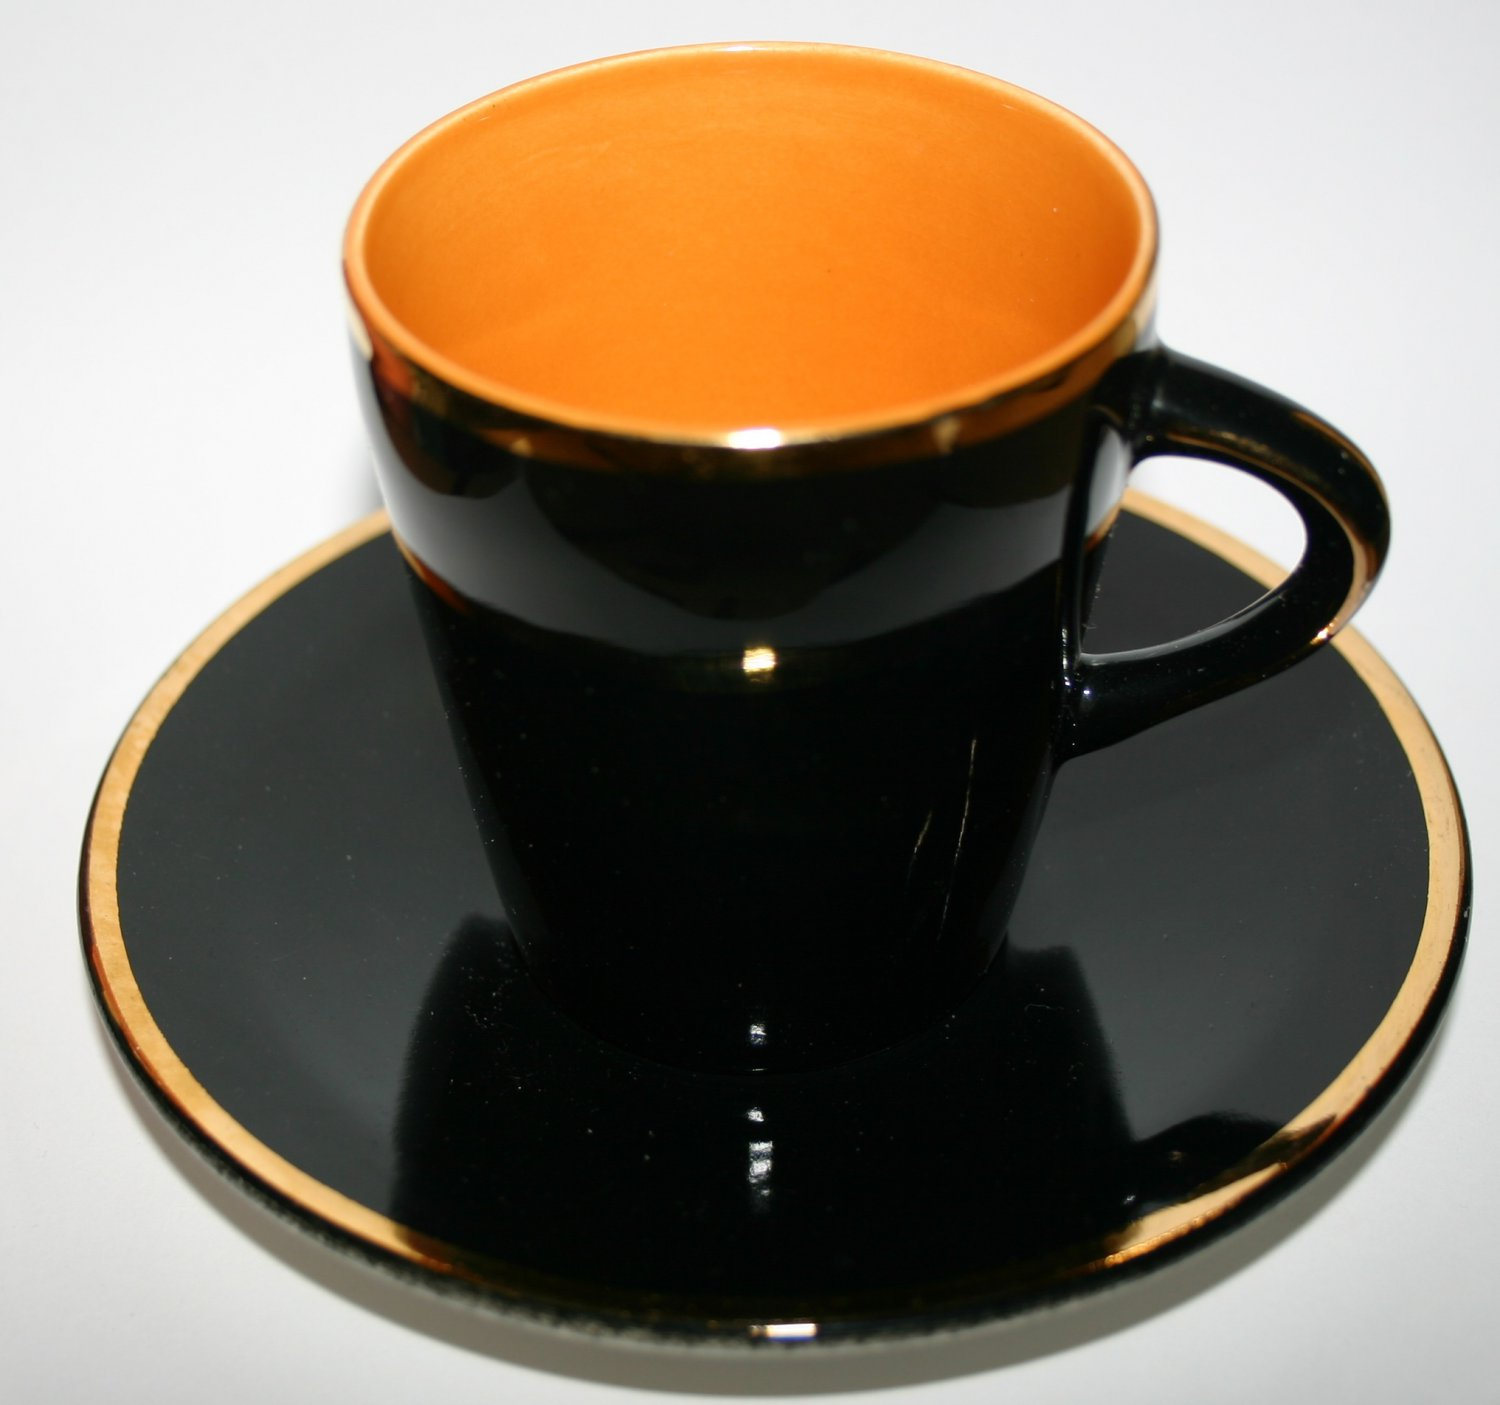 Vintage Palissy Pottery 22 Carat Gold Cup and Saucer Madeleine Design